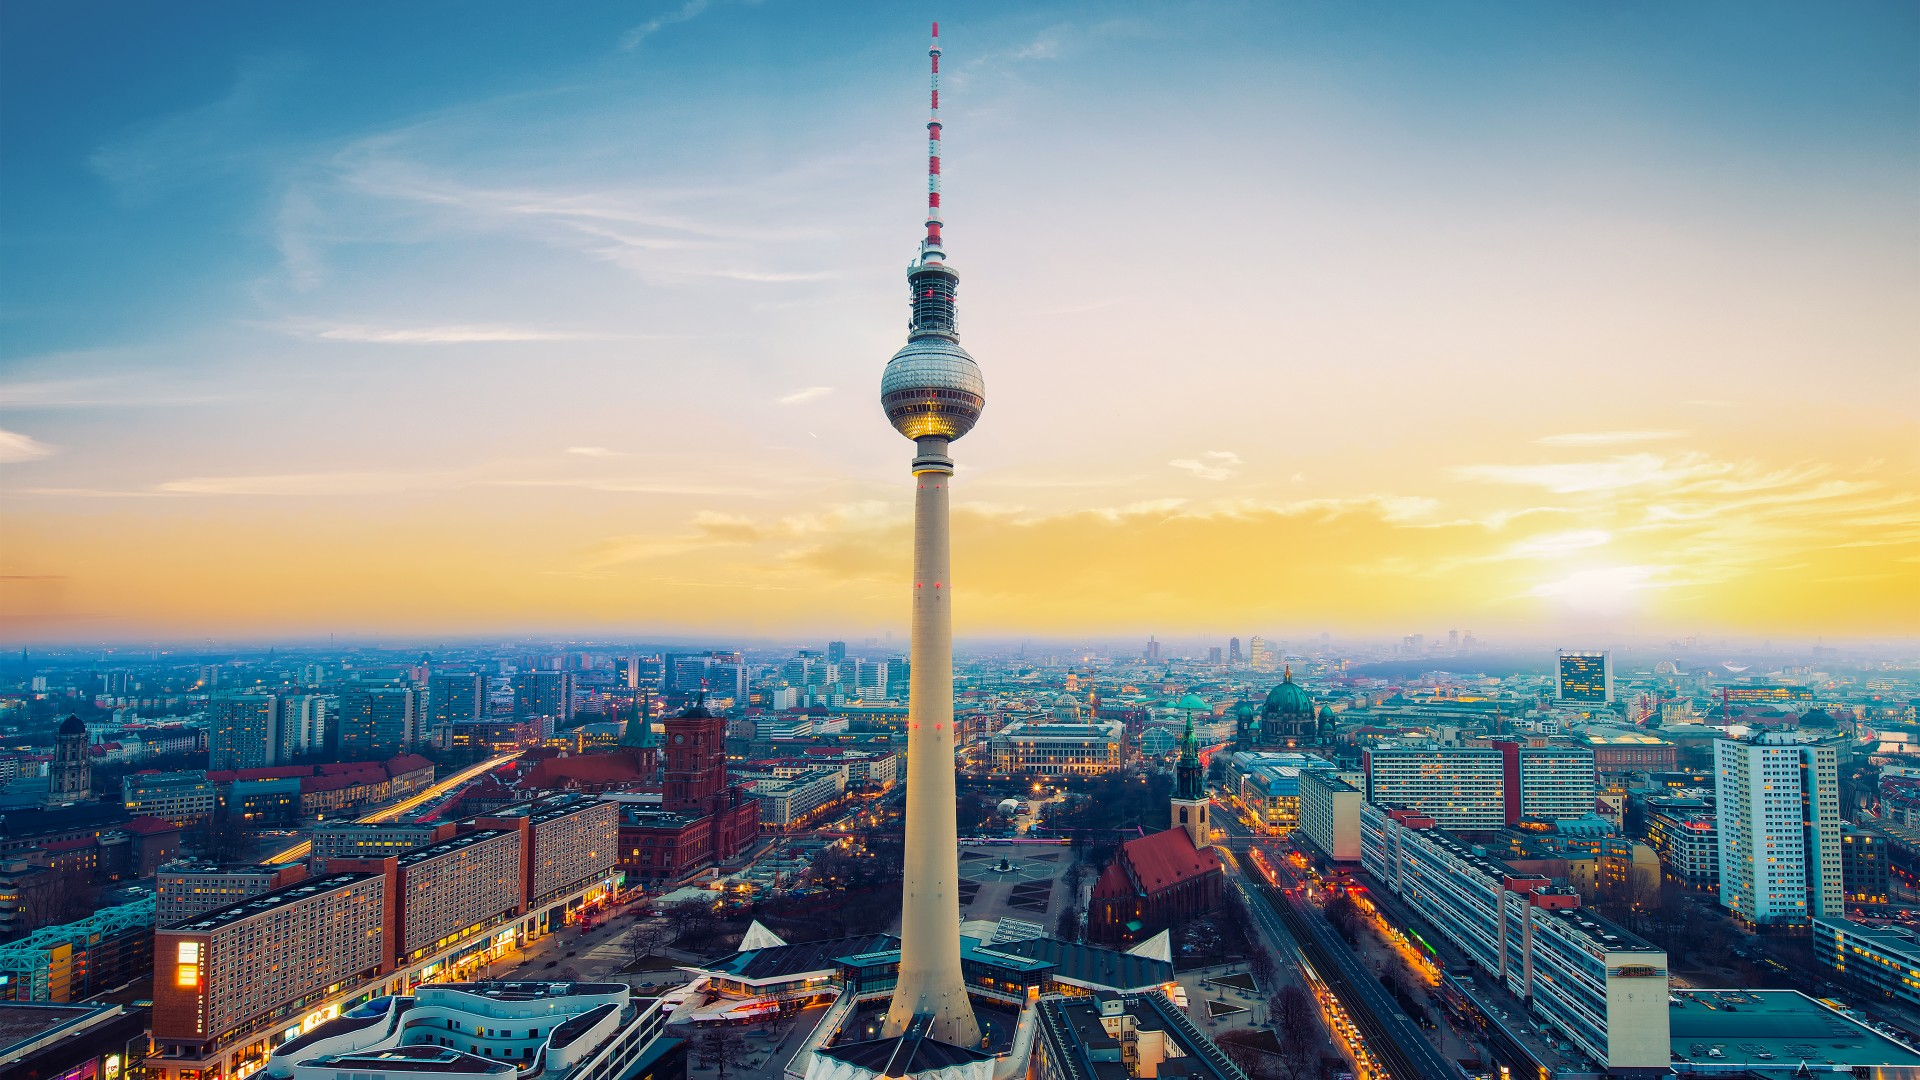 Seoul Wallpaper Iphone Fernsehturm Berlin Tv Tower Germany Wallpapers Hd